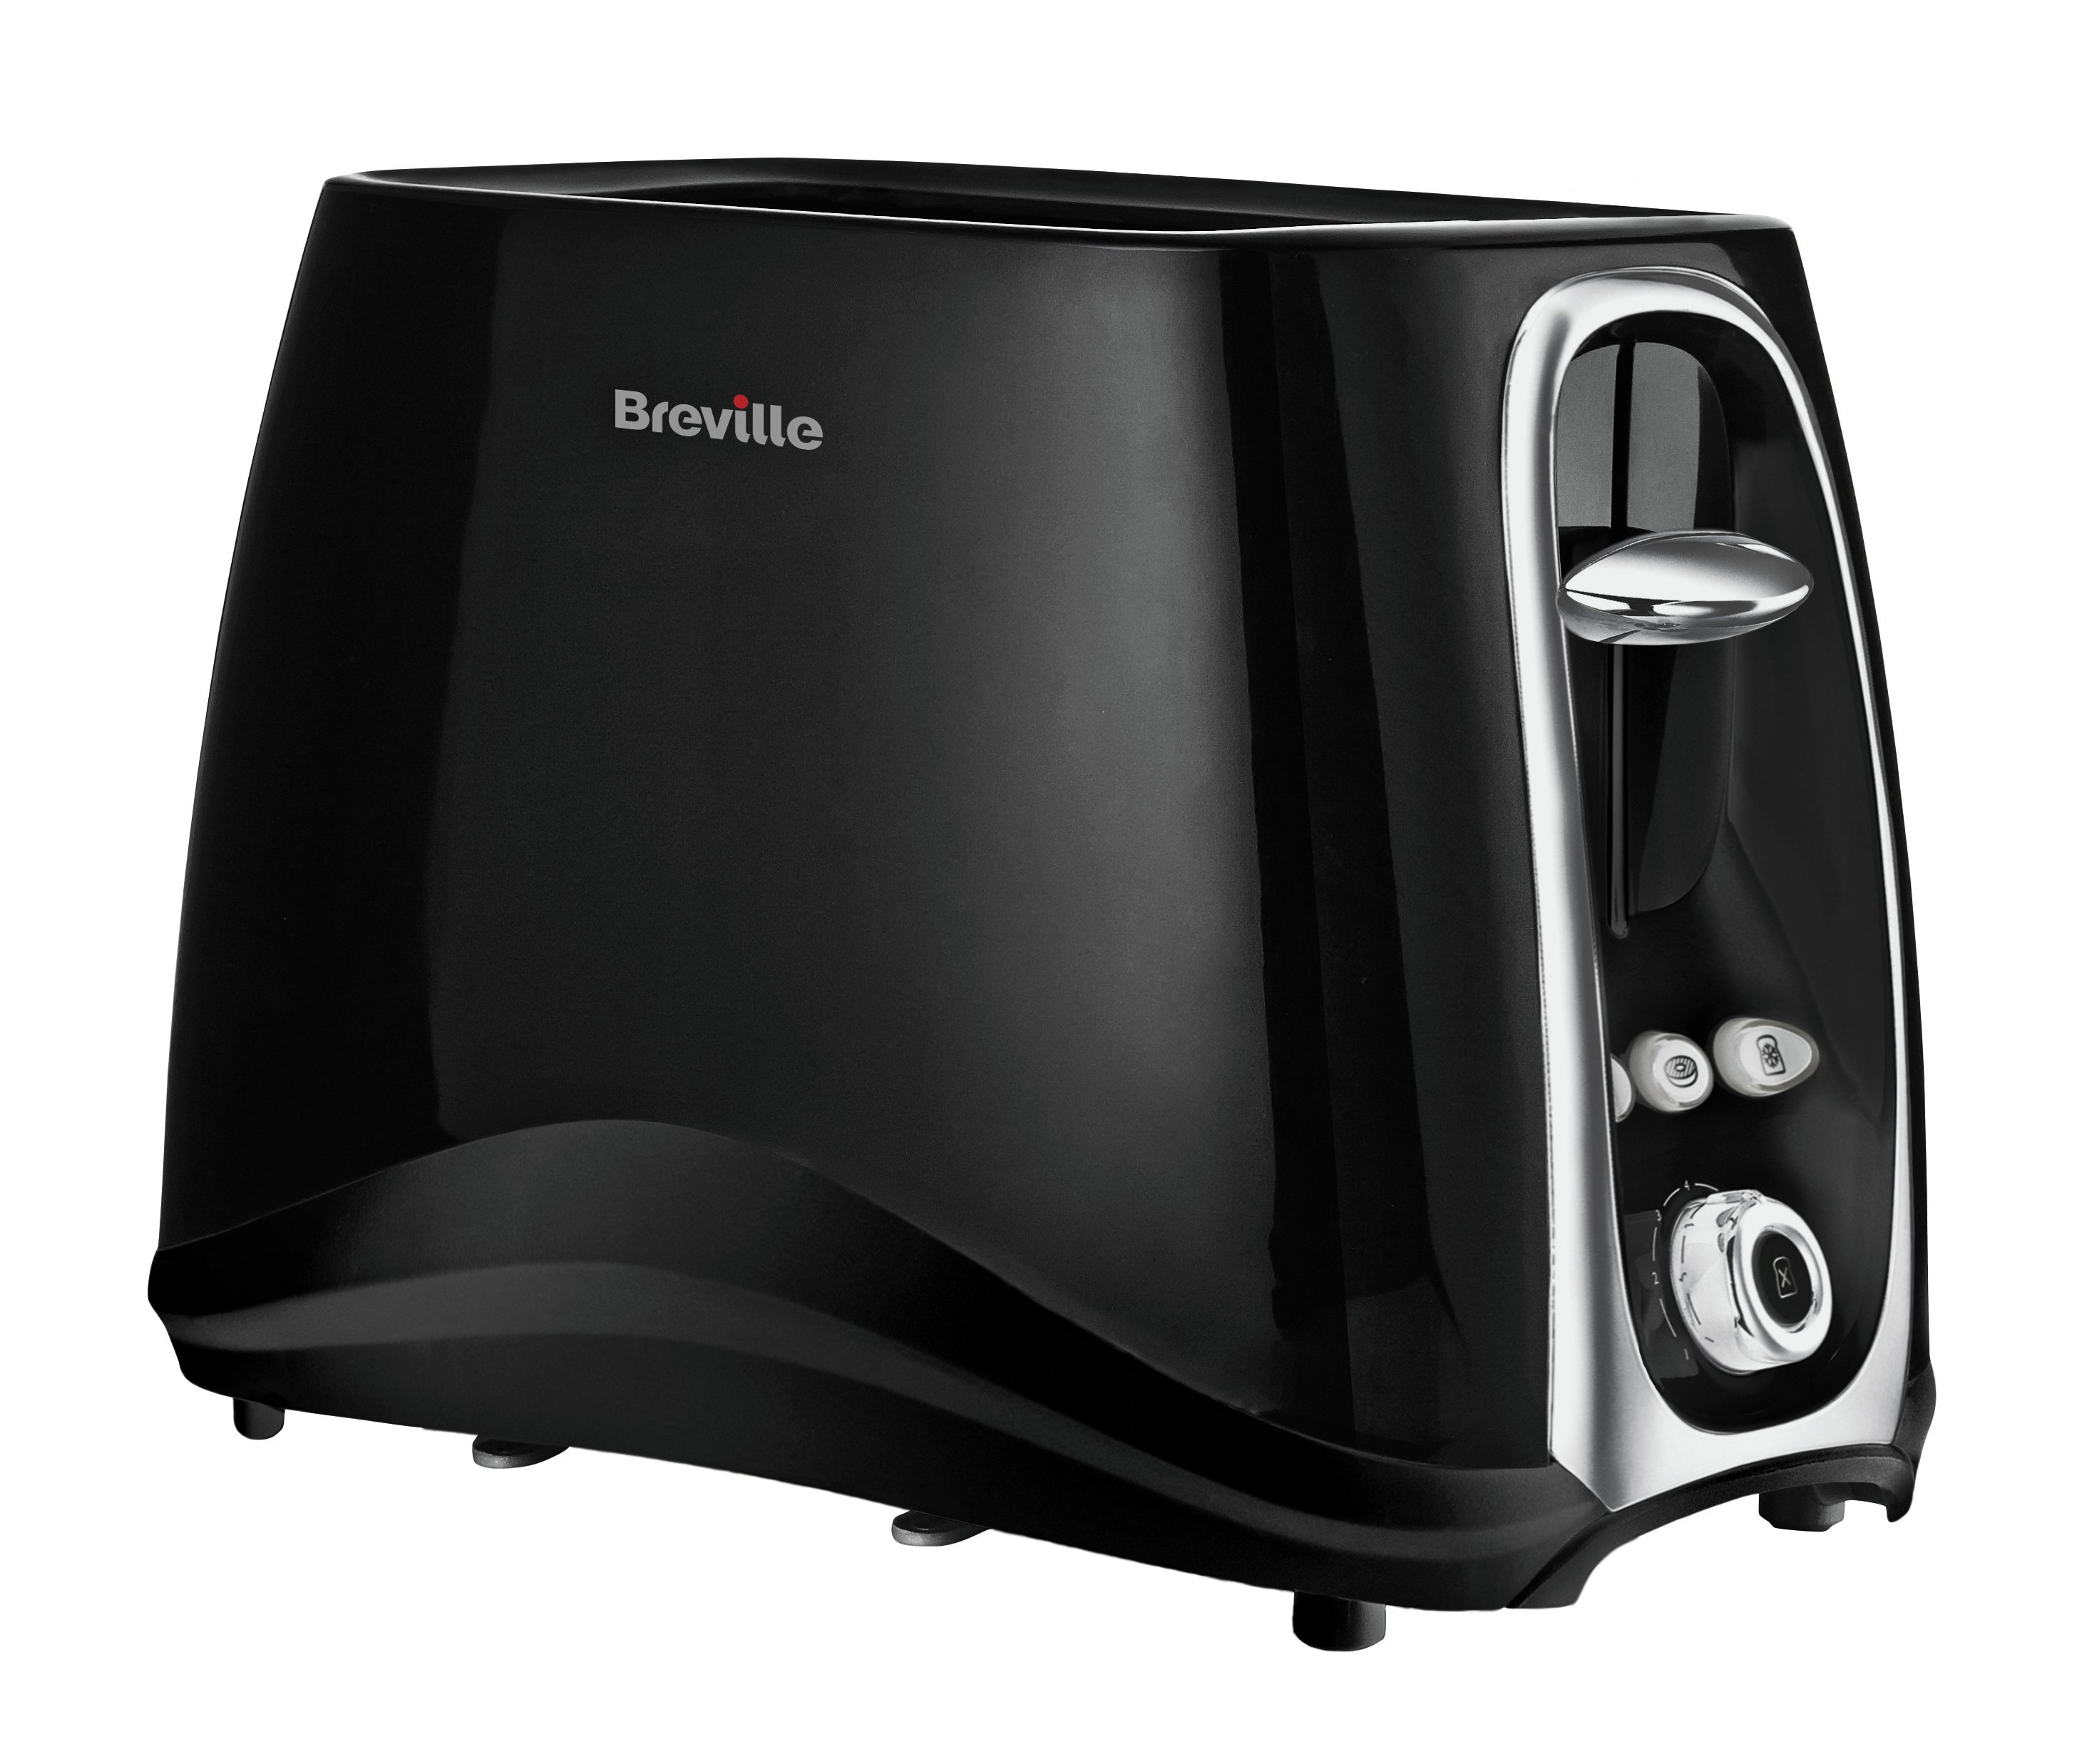 Image of Breville - Style 2 Slice Toaster - Black